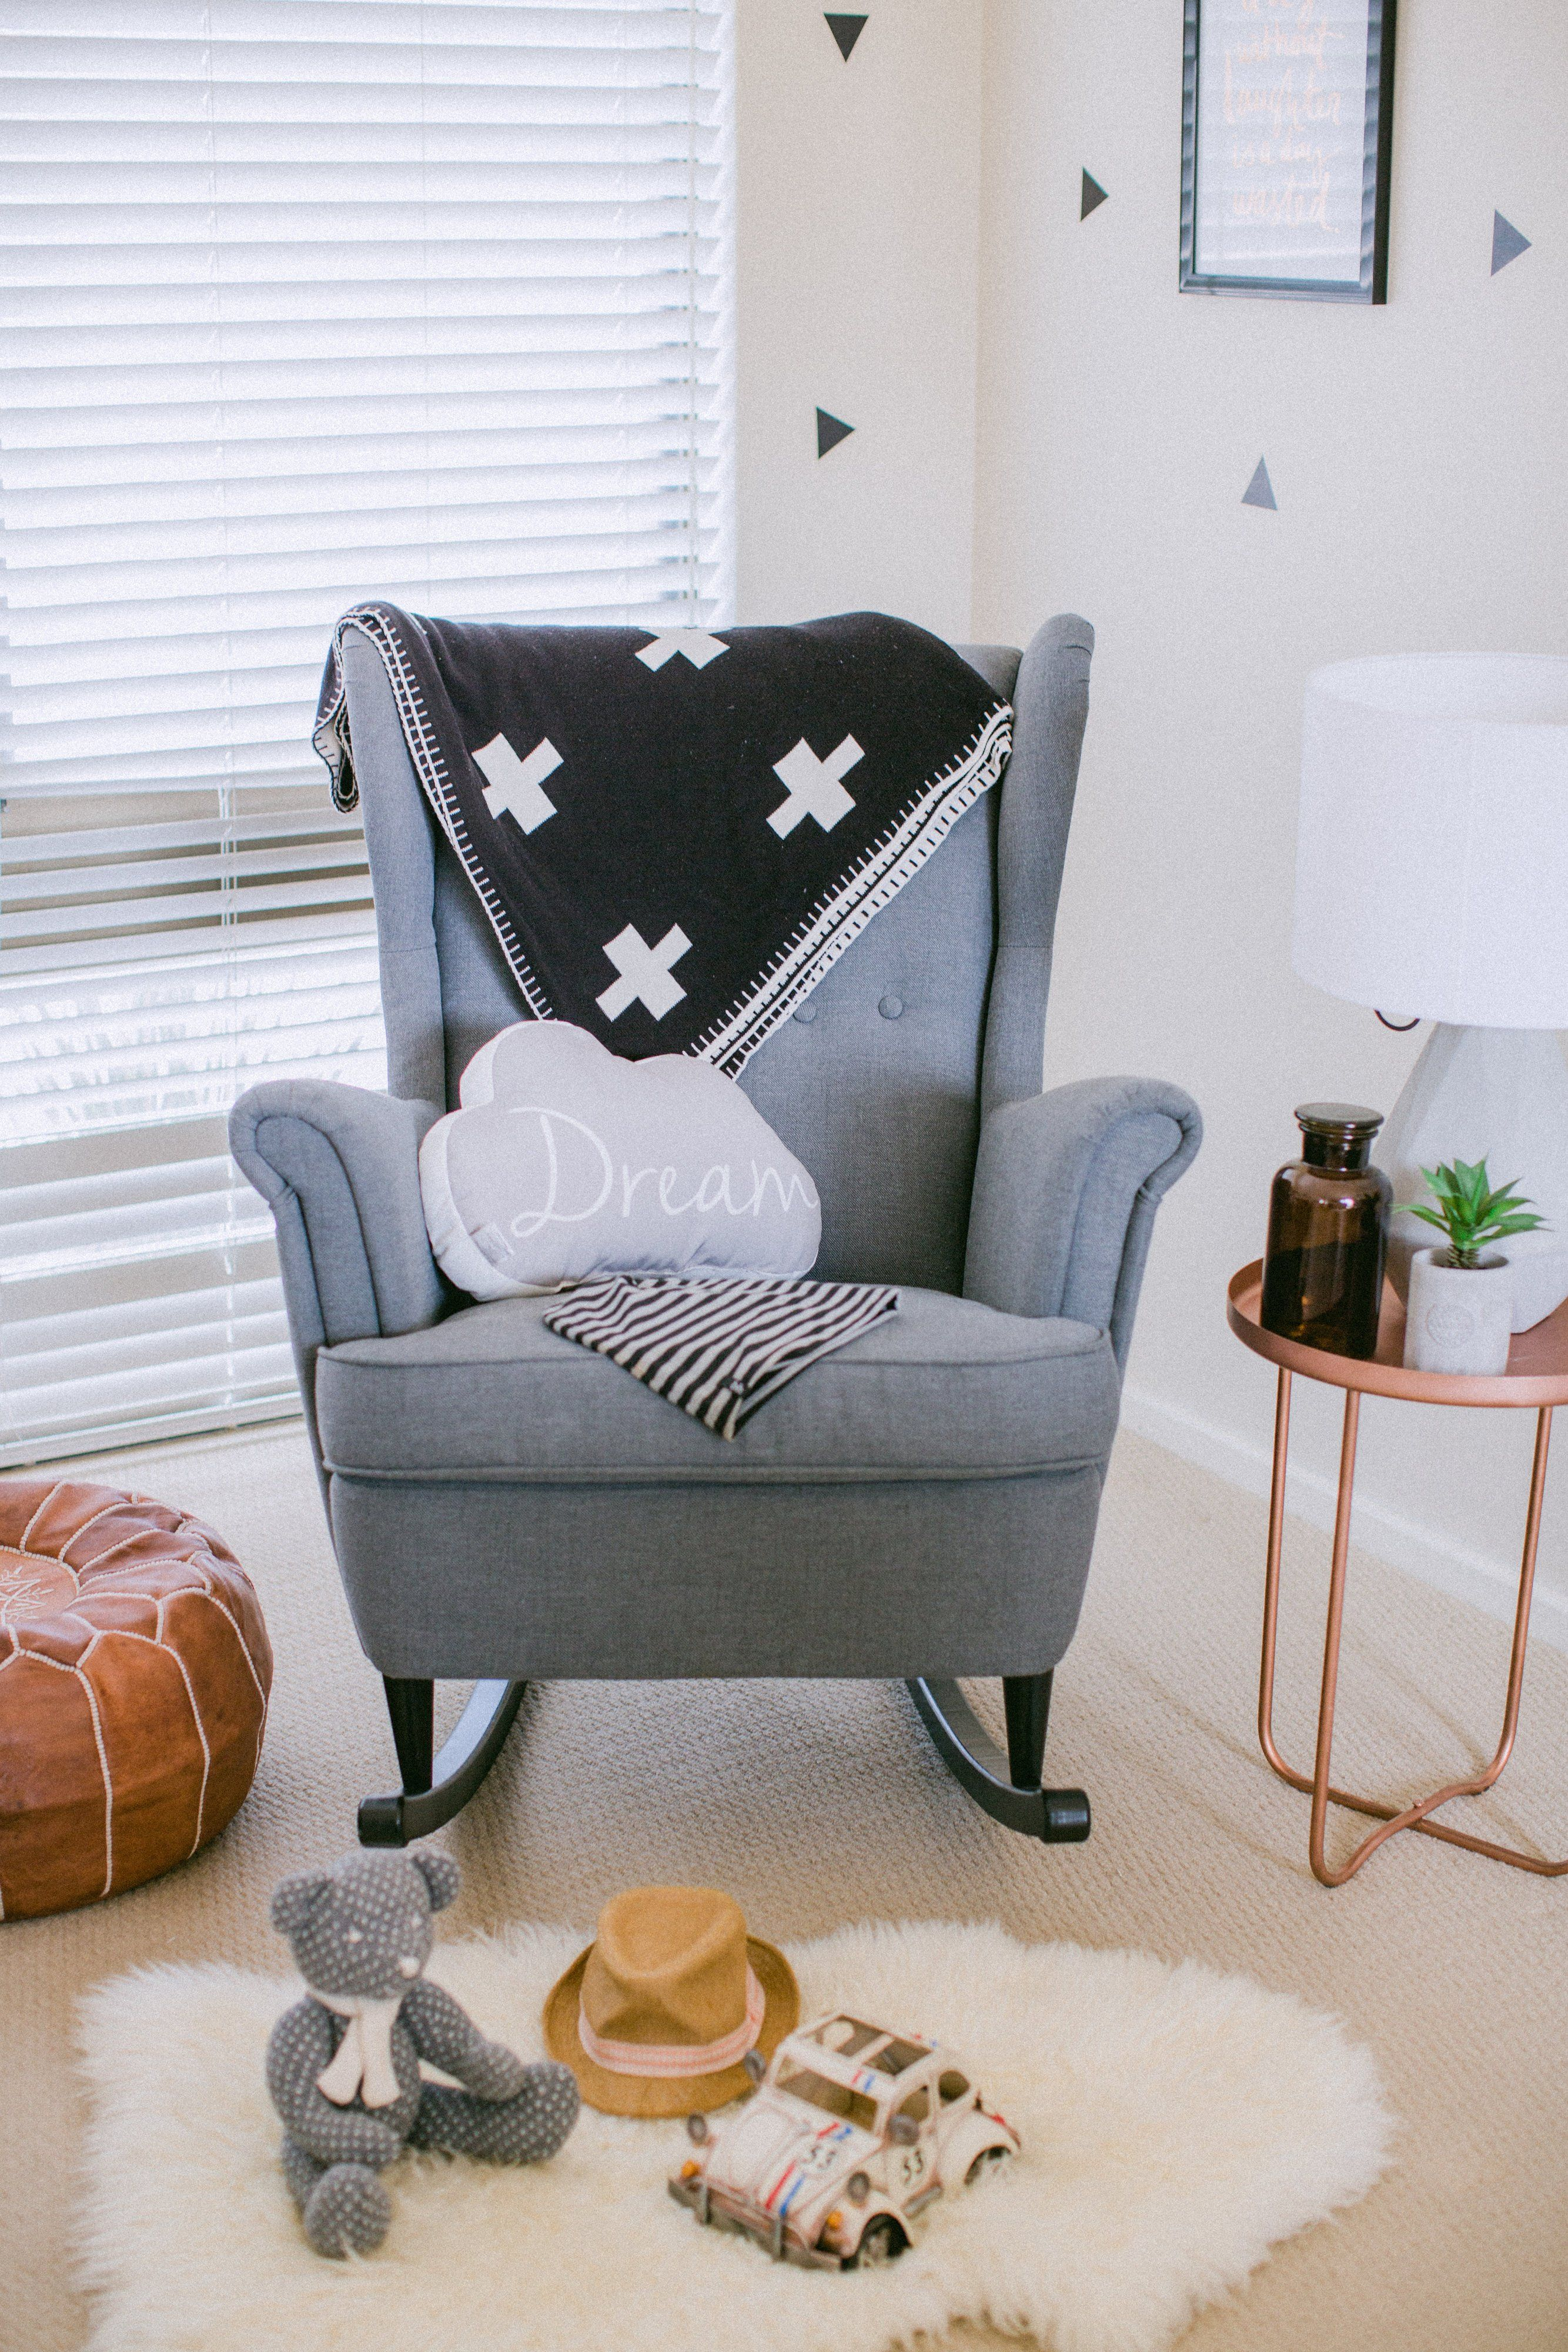 This Handcrafted Kit Will Convert The Beautiful Ikea Strandmon Wingback Armchair Into A Delightfully Cosy Stylish And Affordable Rocking Chair